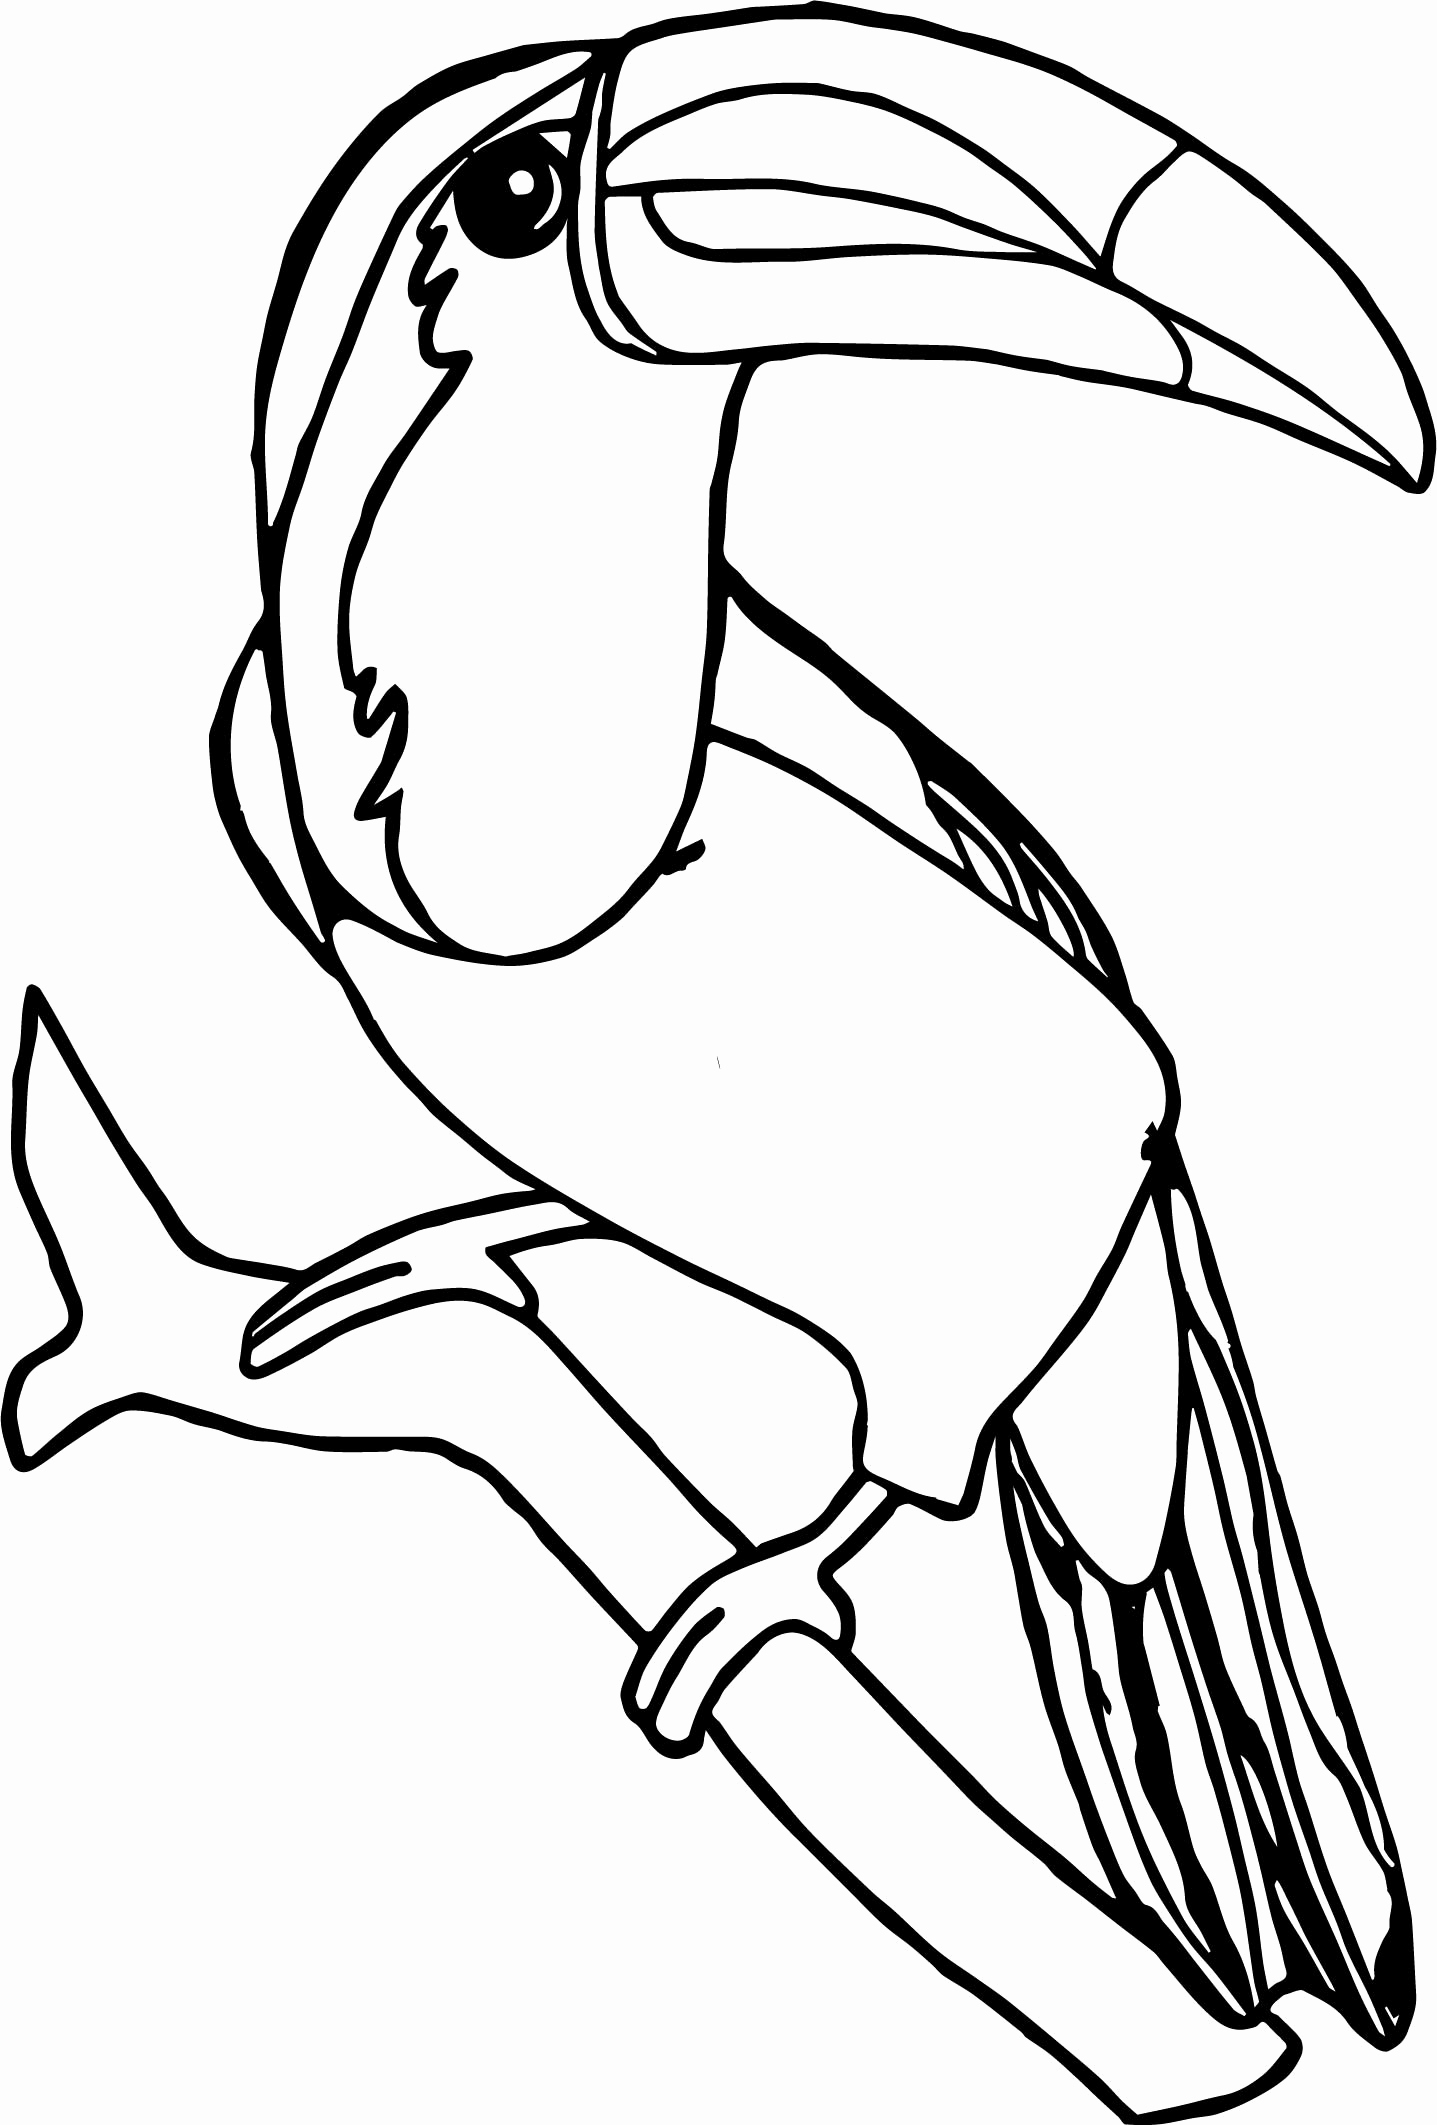 1437x2125 Toucan Coloring Page Pages Beautiful With Ribsvigyapan Toucan